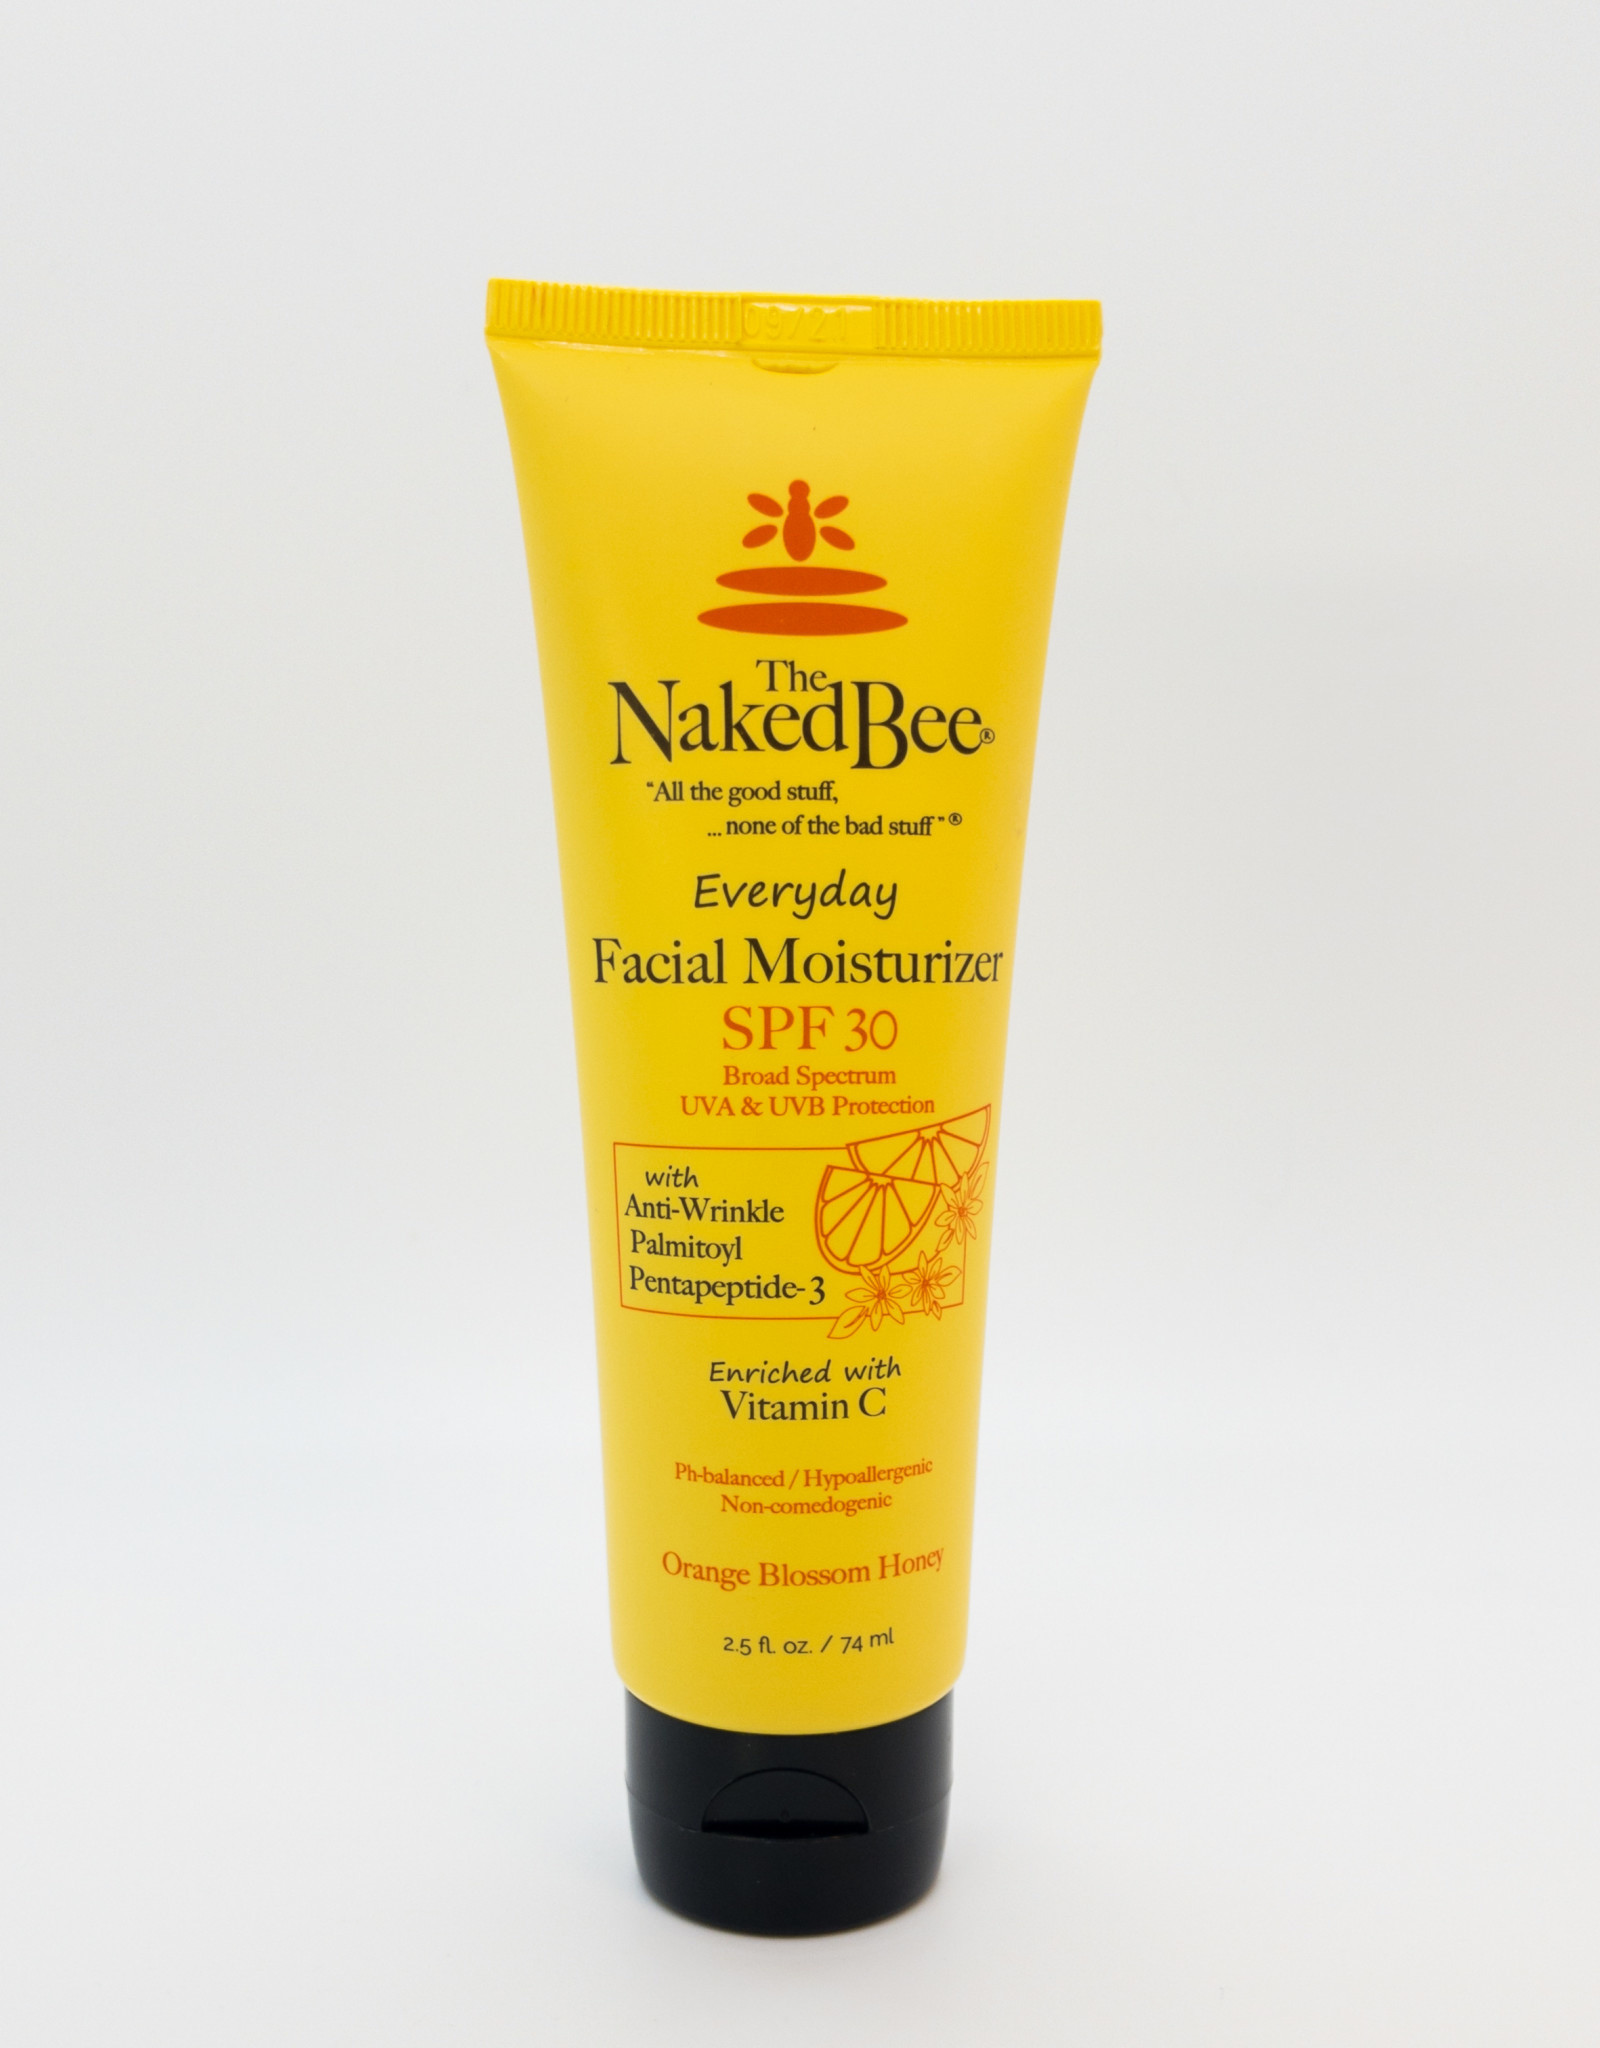 The Naked Bee The Naked Bee - Everyday Facial Moisturizer in Orange Blossom Honey with SPF 30, 2.5 oz.